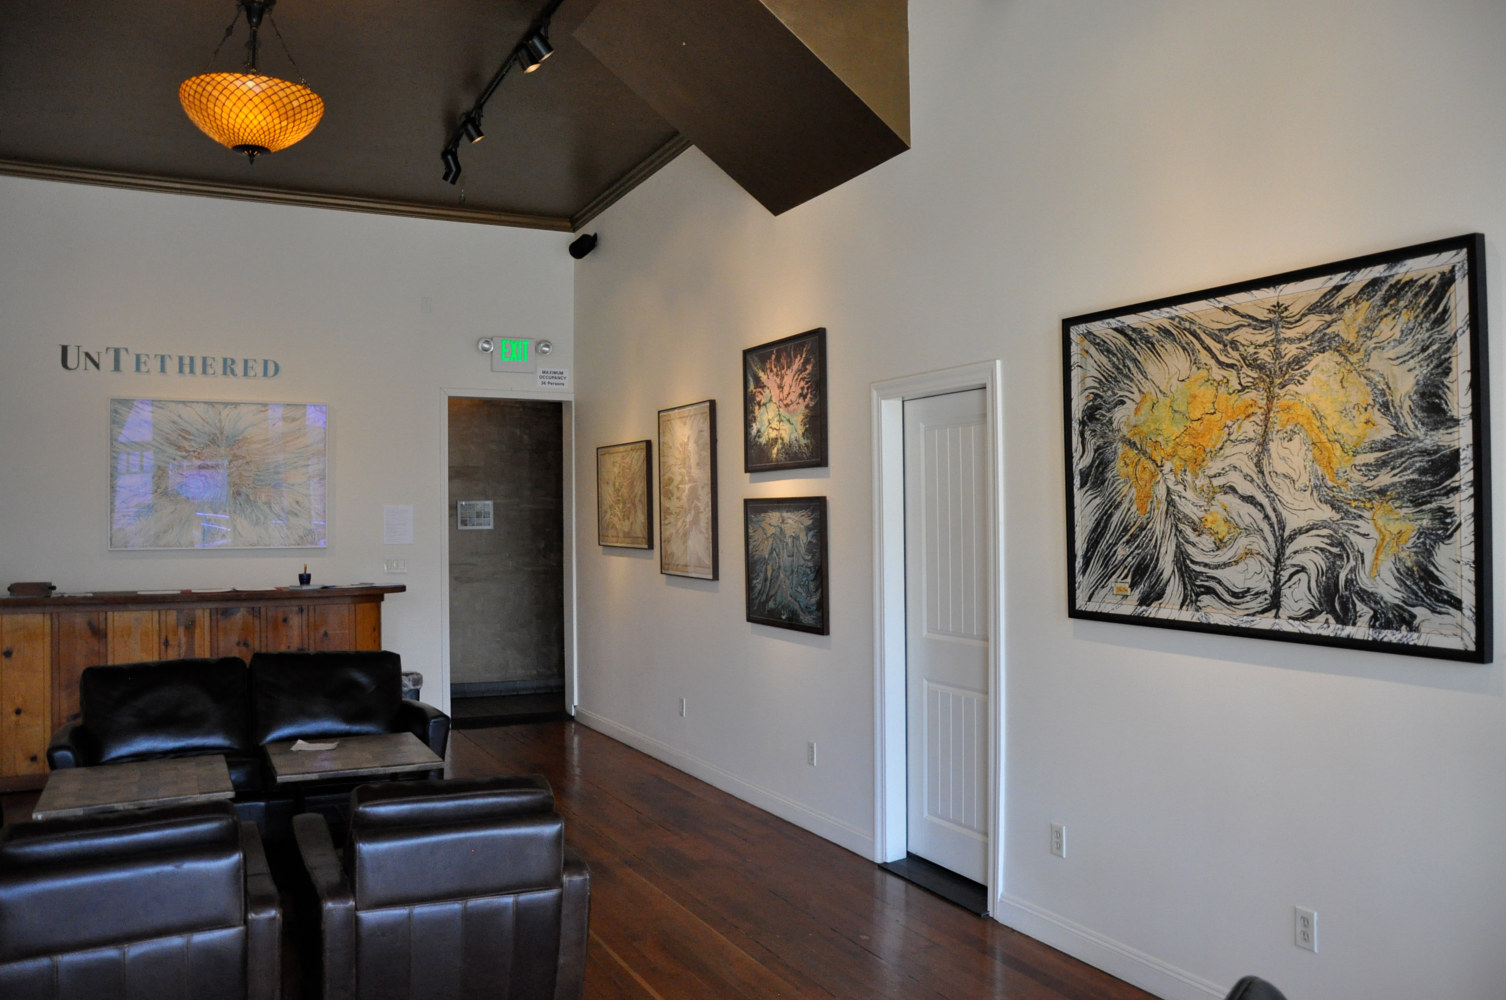 Dogpatch Gallery South Wall by Mark Garrett